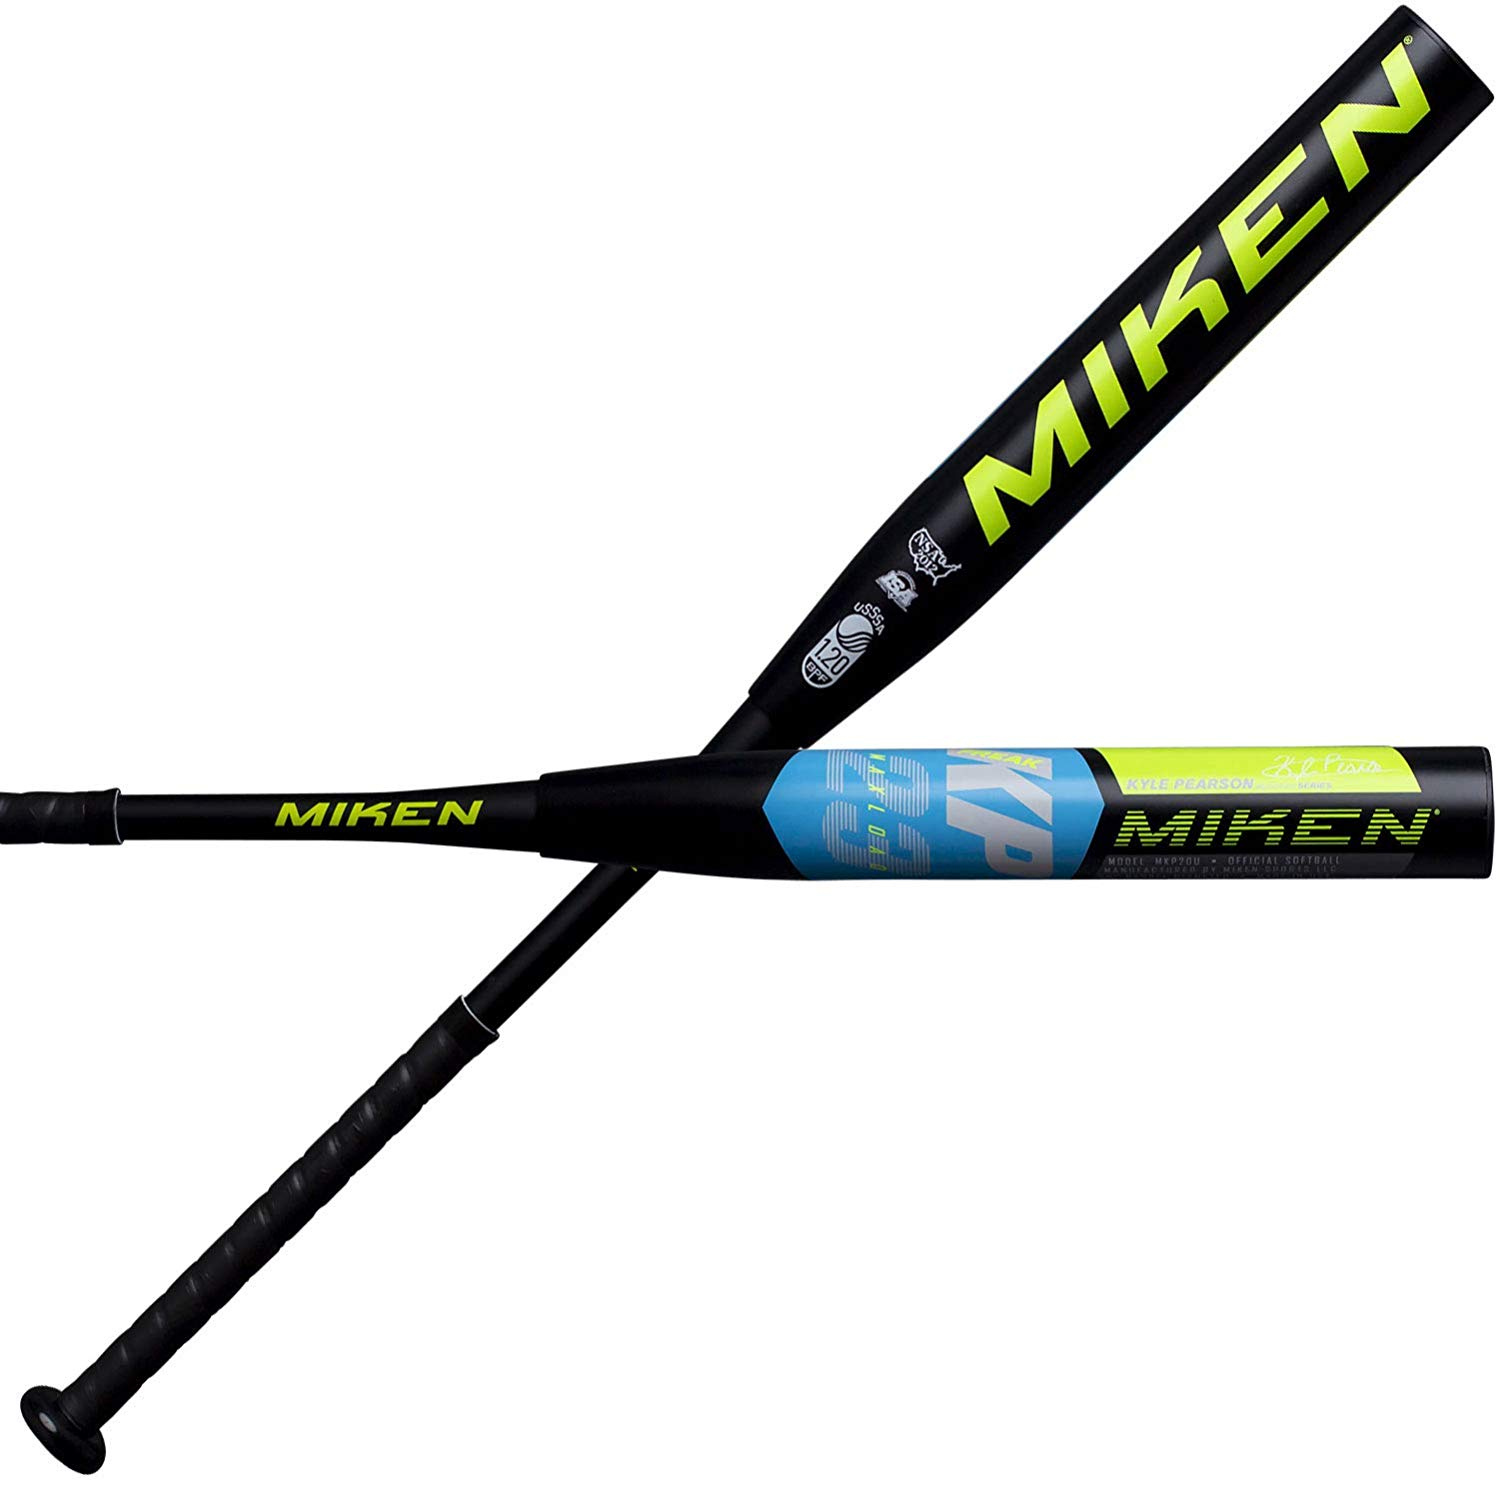 DESIGNED FOR ADULTS PLAYING RECREATIONAL AND COMPETITIVE SLOWPITCH SOFTBALL, this Miken Freak 23 Kyle Pearson model USSSA Maxload Slowpitch Softball Bat maximizes bat speed and hitting distance EXTENDED SWEET SPOT AND INCREASED FLEX due to 12 inch barrel, F2P Barrel Flex Technology, and revolutionary 100 COMP composite fibers that will also deliver legendary performance and durability INCREASED POWER THROUGH THE HITTING ZONE due to 0.5 oz maxload on the end of the bat 2.25 inch barrel diameter, 12 inch barrel length, 25oz bat weight APPROVED FOR PLAY IN ALL USSSA LEAGUES.